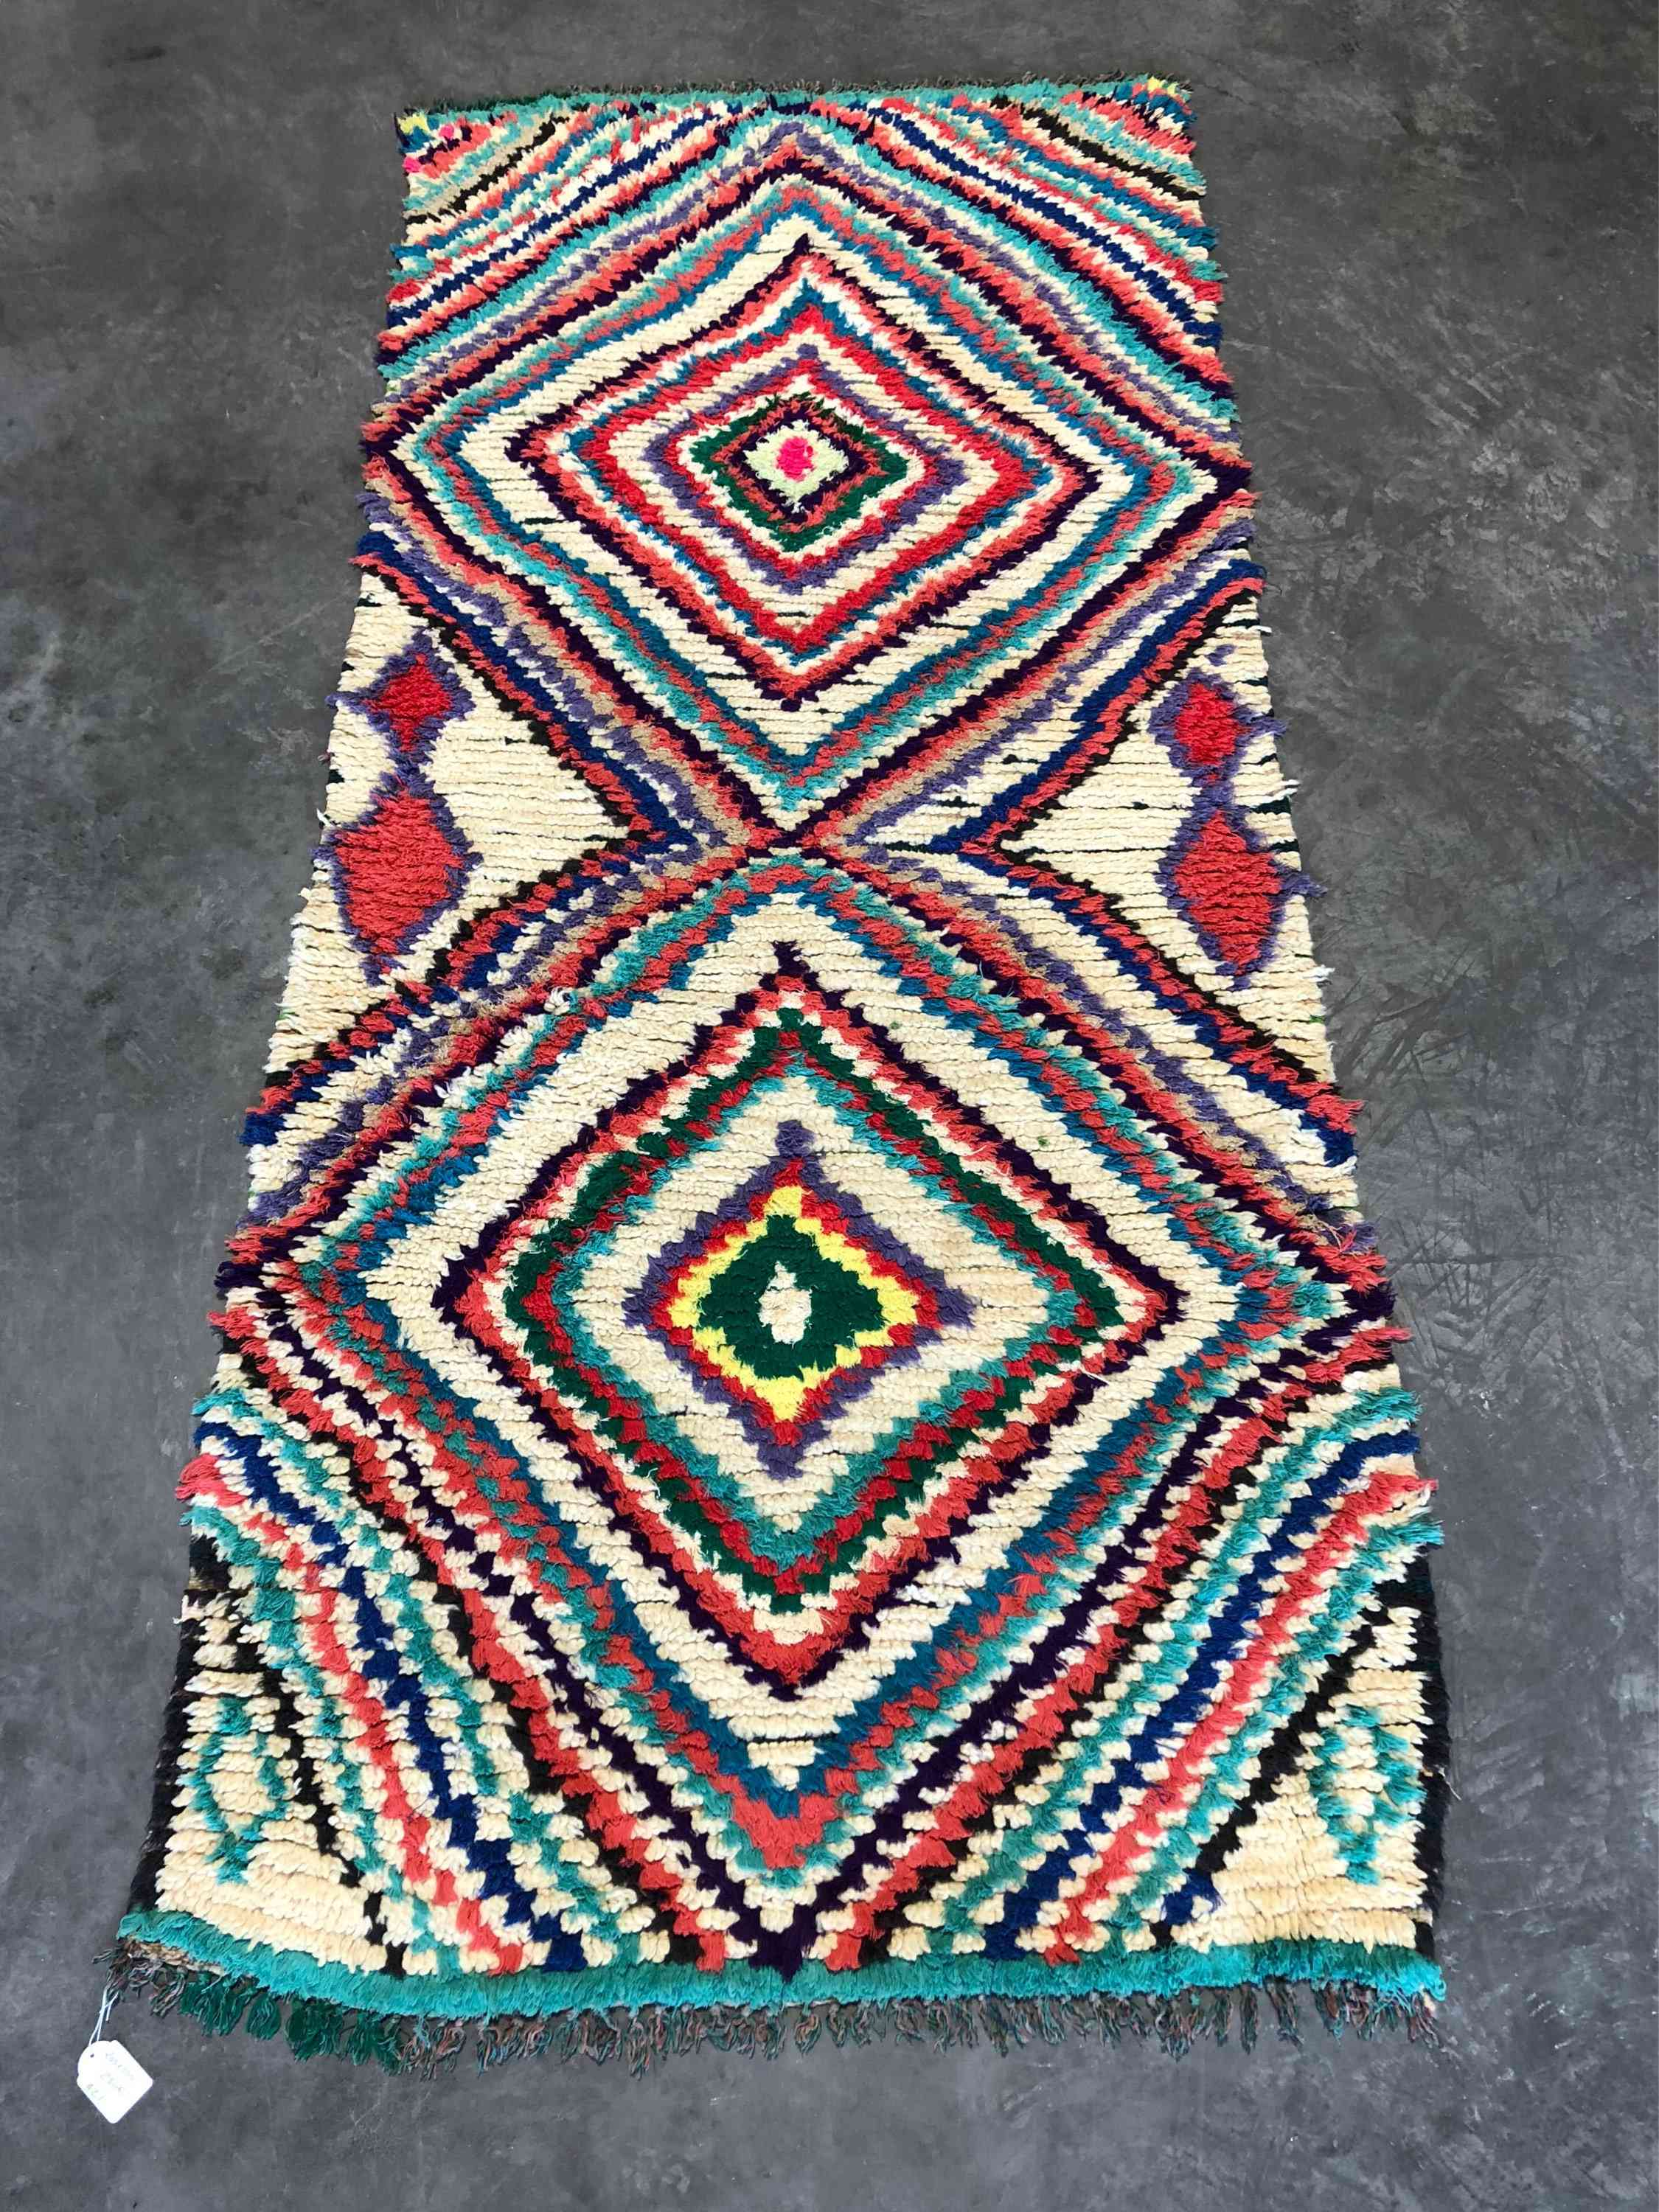 A multicolored Berber rug with fringed sides.